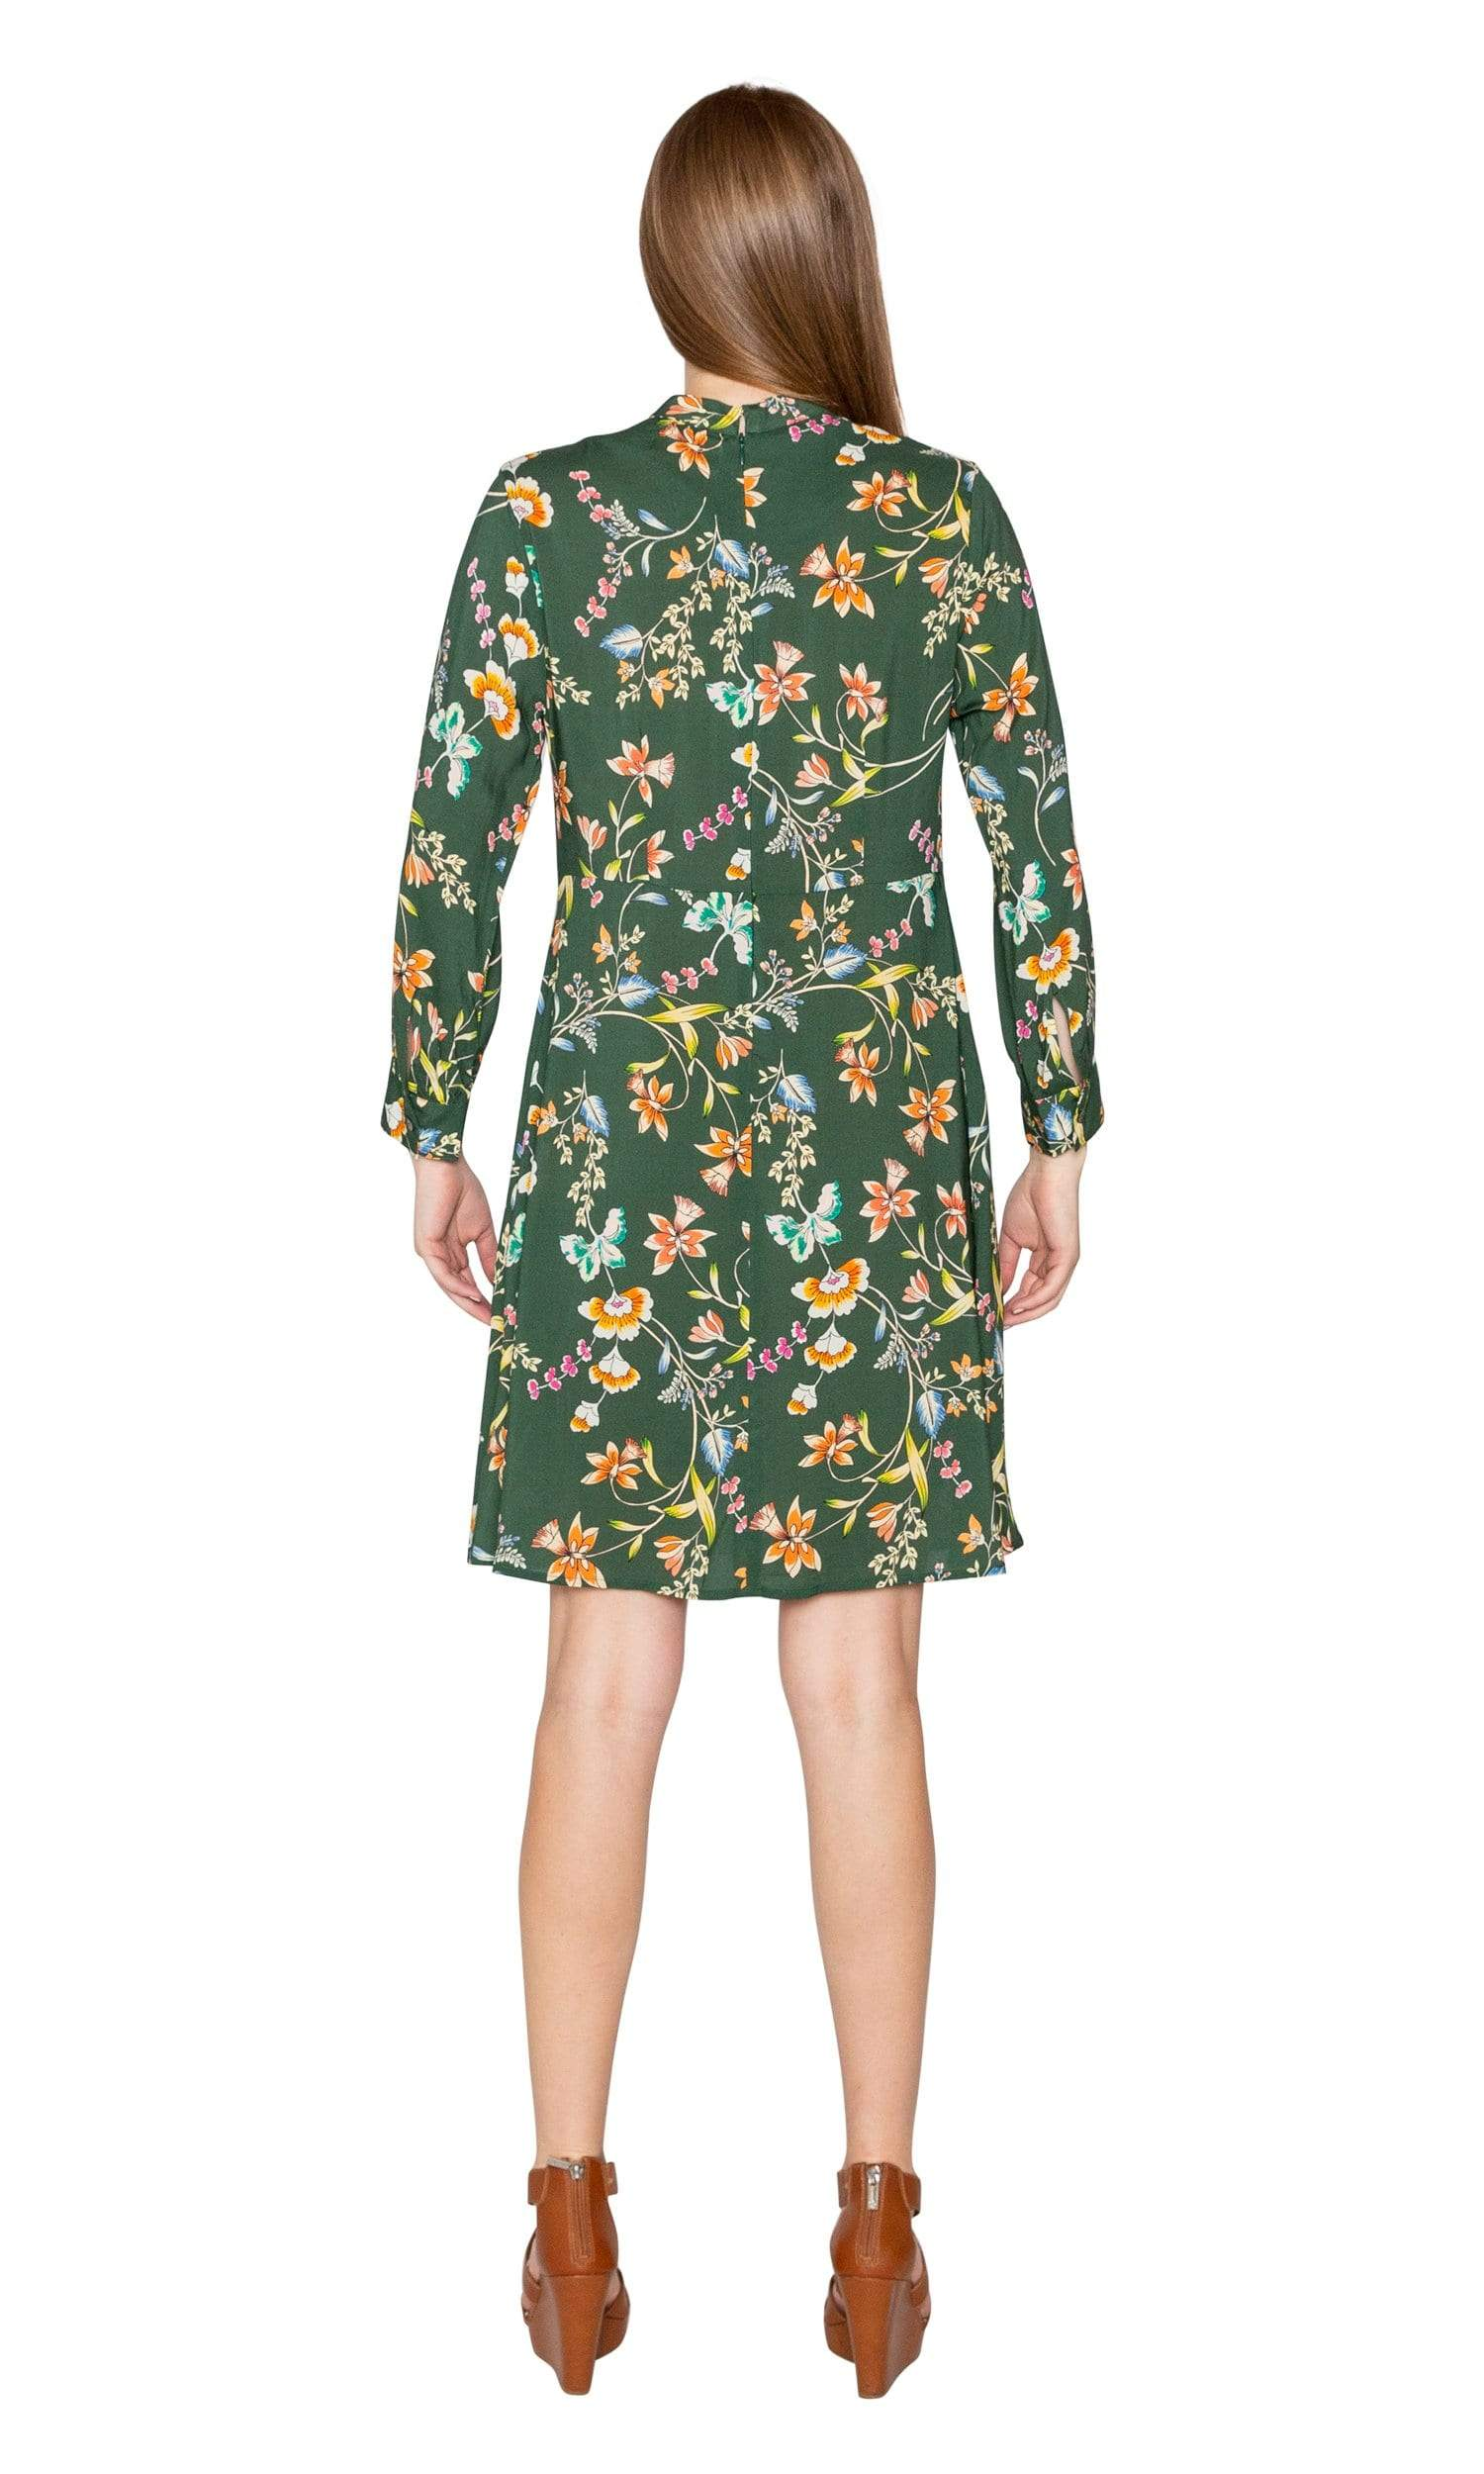 Velvet by Graham & Spencer Juliet Printed Floral Mock Neck Dress